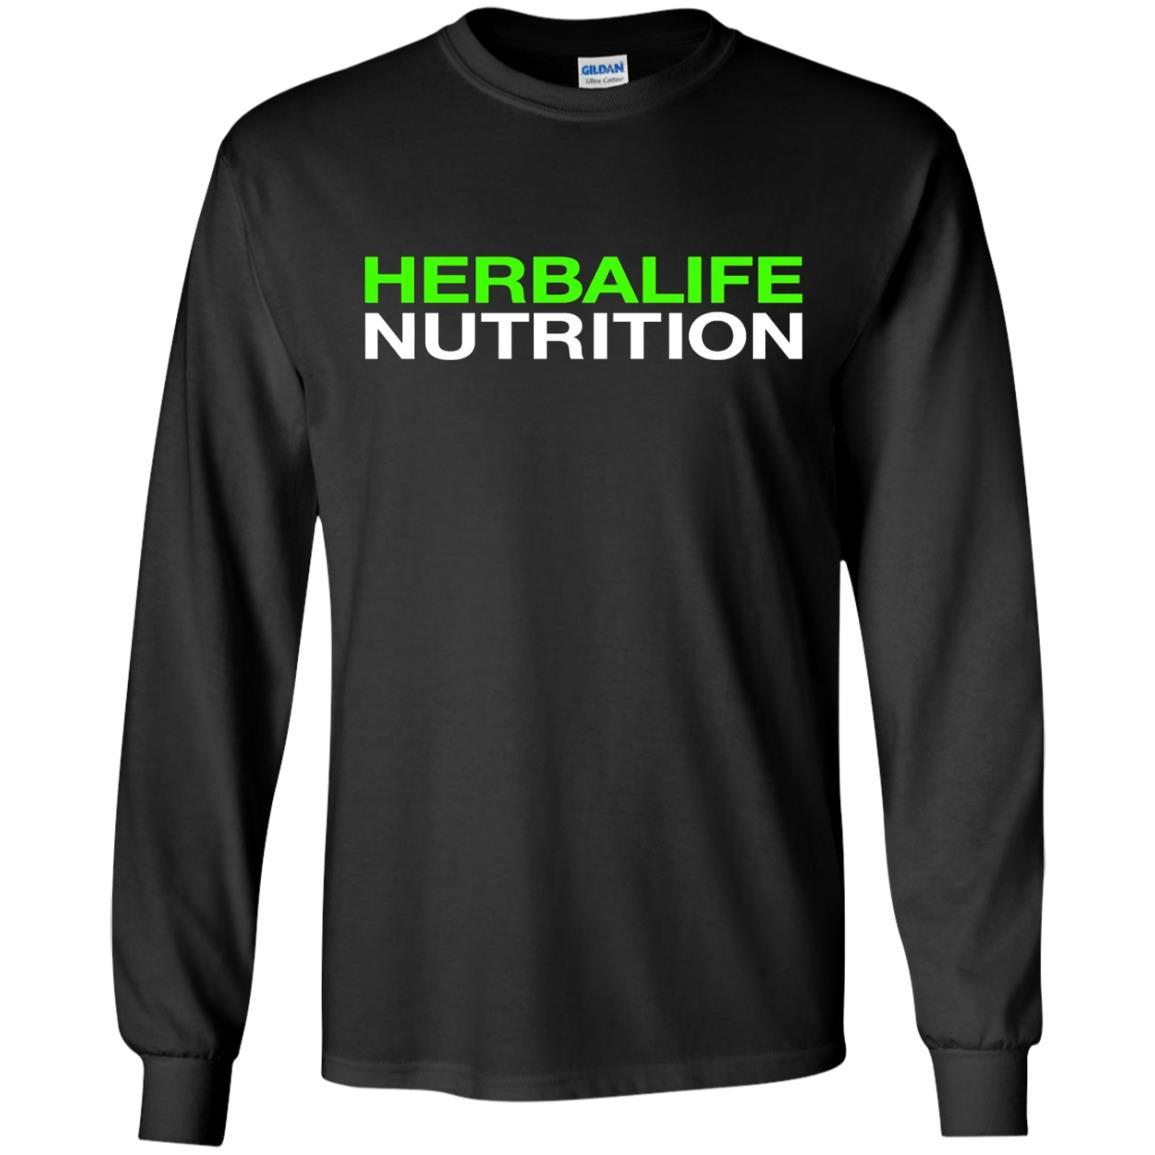 HERBALIFE NUTRITION - LS T-Shirt Style / Color / Size